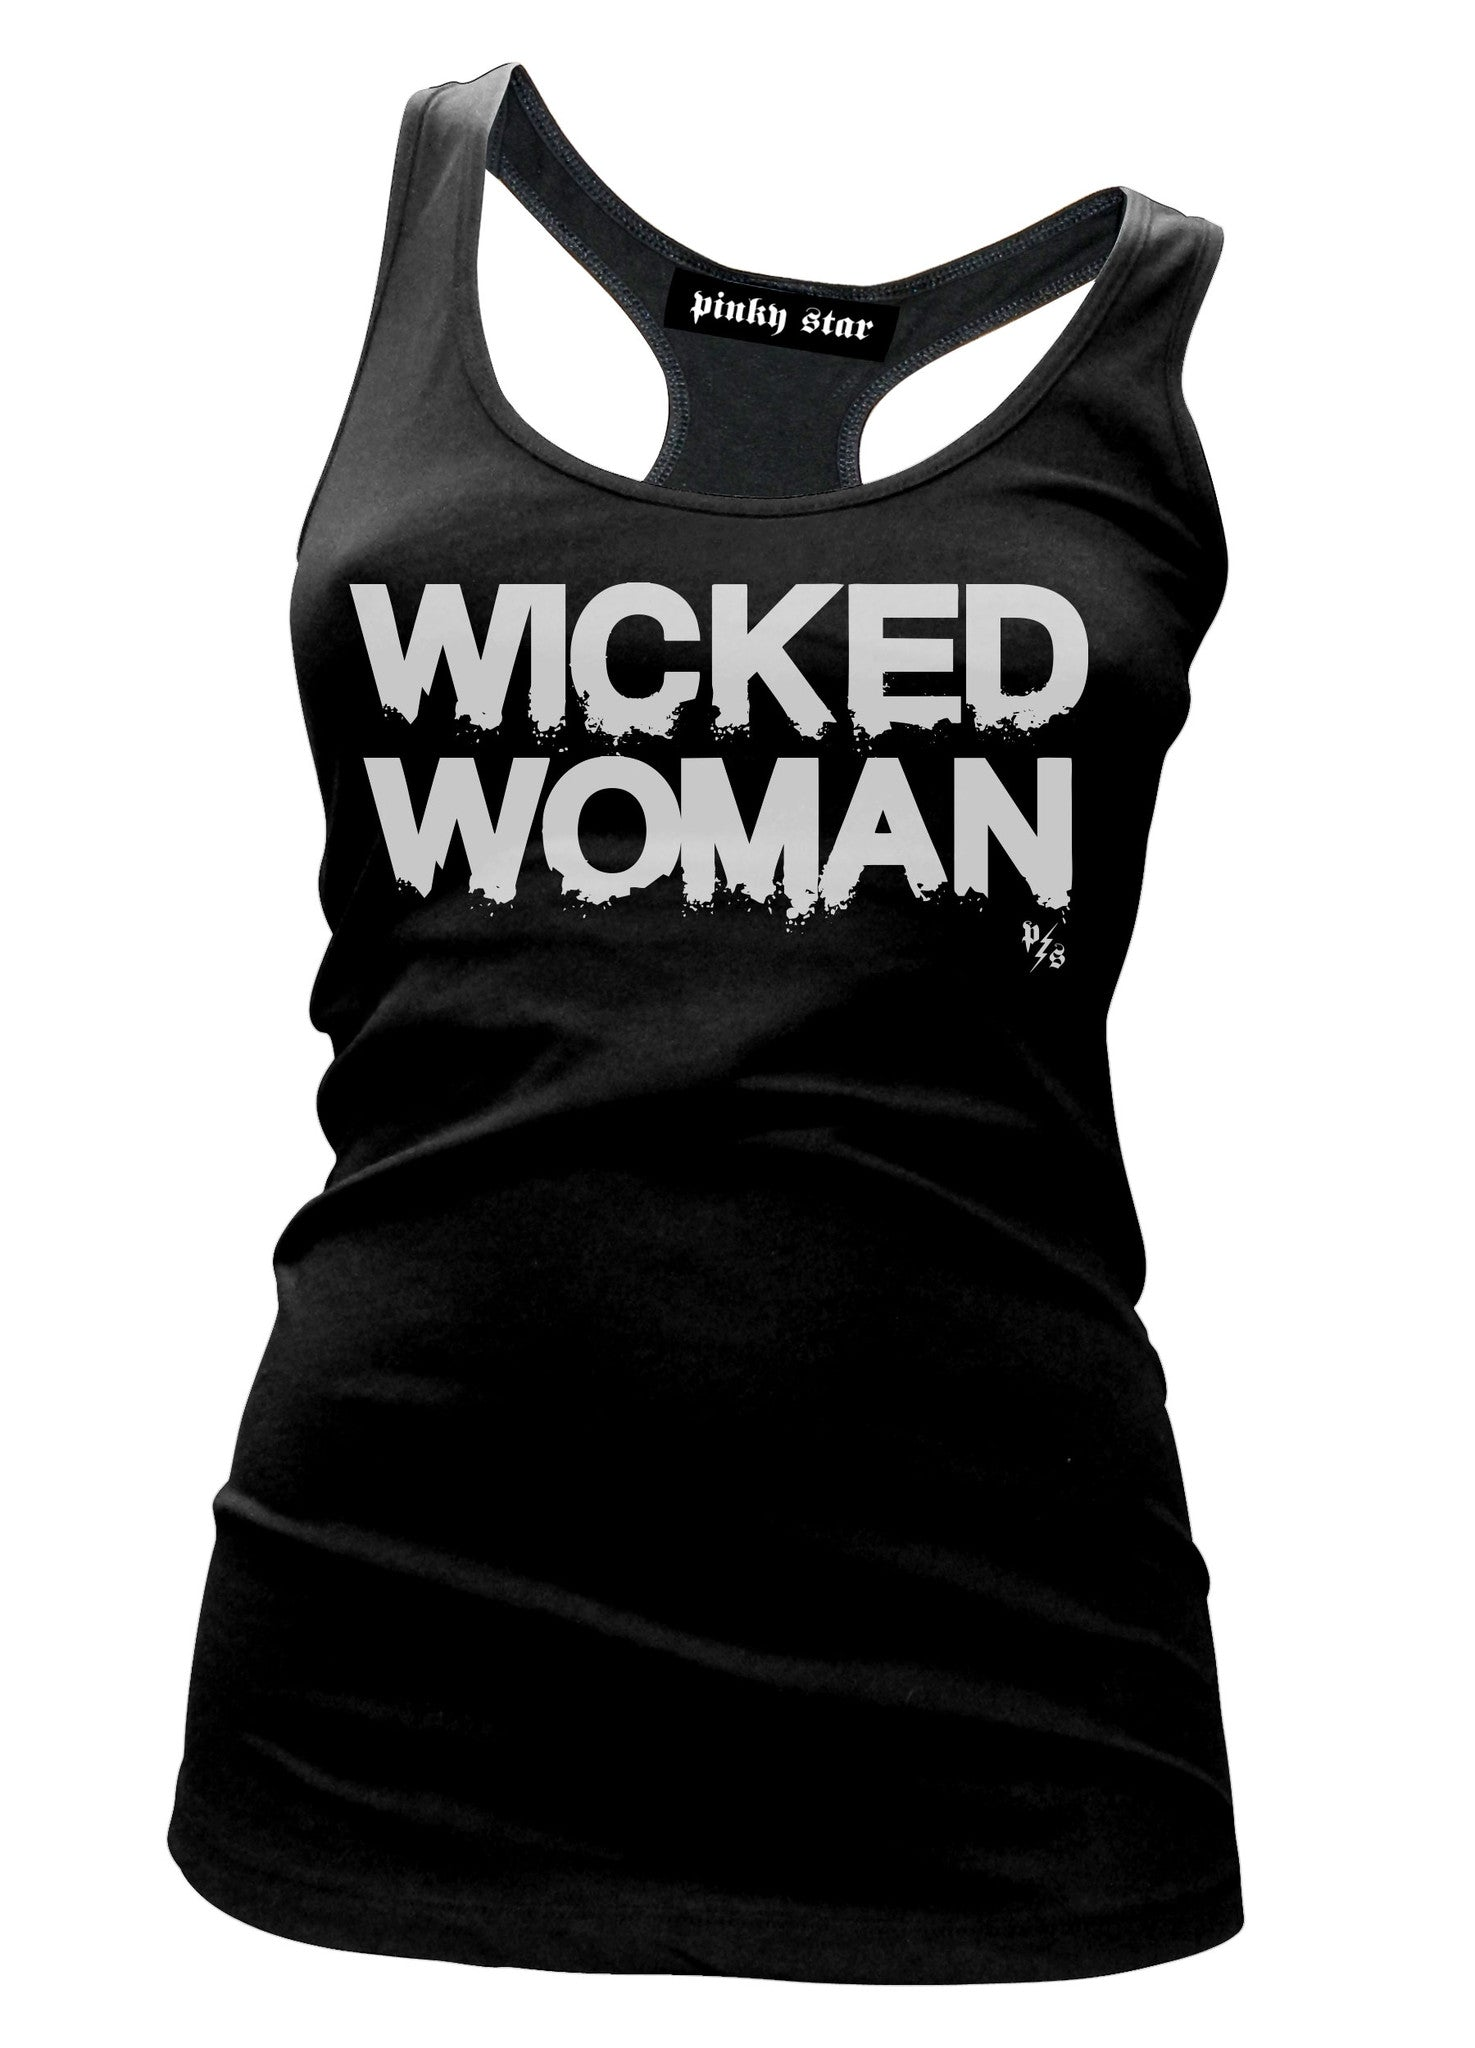 Wicked Woman Tank Top